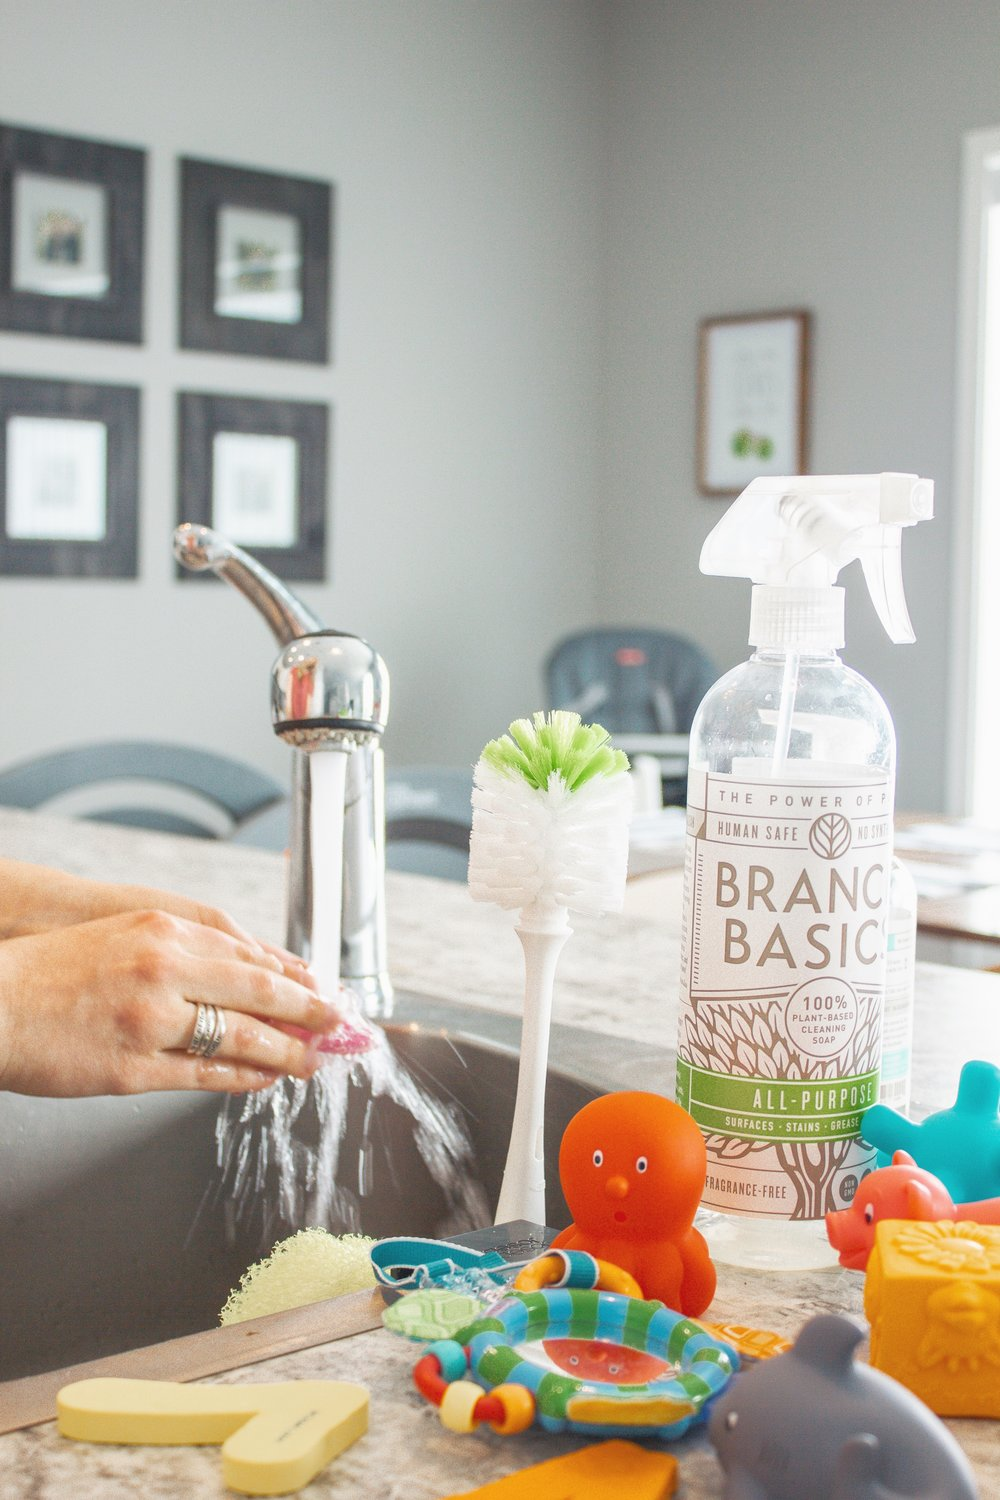 daily-kitchen-uses-Branch-Basics-non-toxic-cleaner-05.jpg